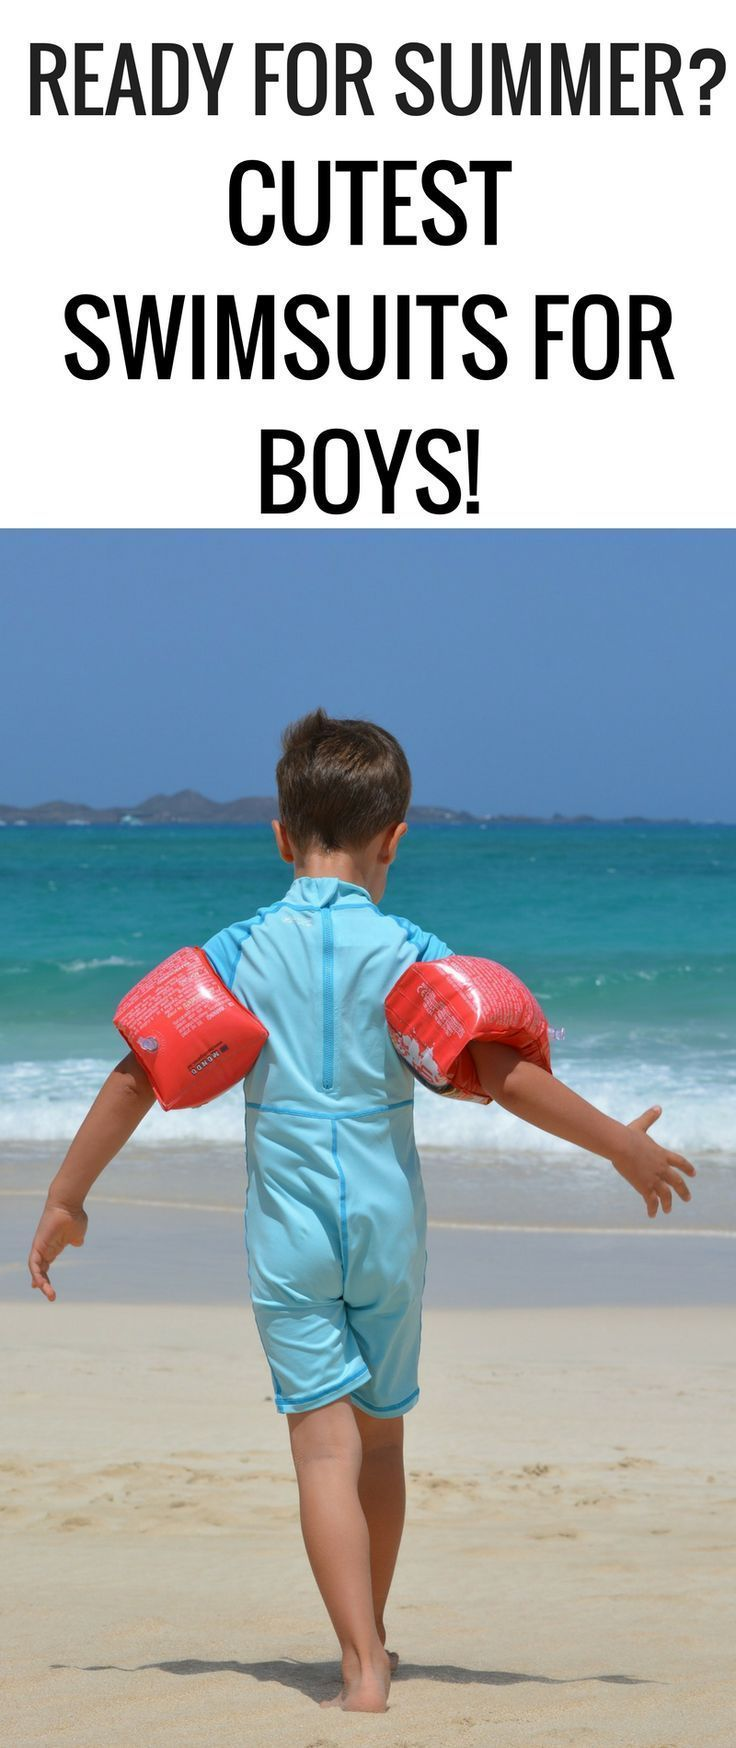 Cute and Affordable swim suits for boys! Boy swimsuits sets! Boys Swimwear. Boys Swim Trunks. Kids Swimwear. Swimsuits for Boys. Boys Swim Shorts. Bathing suits for boys. Boy Swimsuits. Swimwear for boys. Boys Swimsuits. Boys bathing suits. Childrens swimwear. Children's swimsuits. Affiliate.